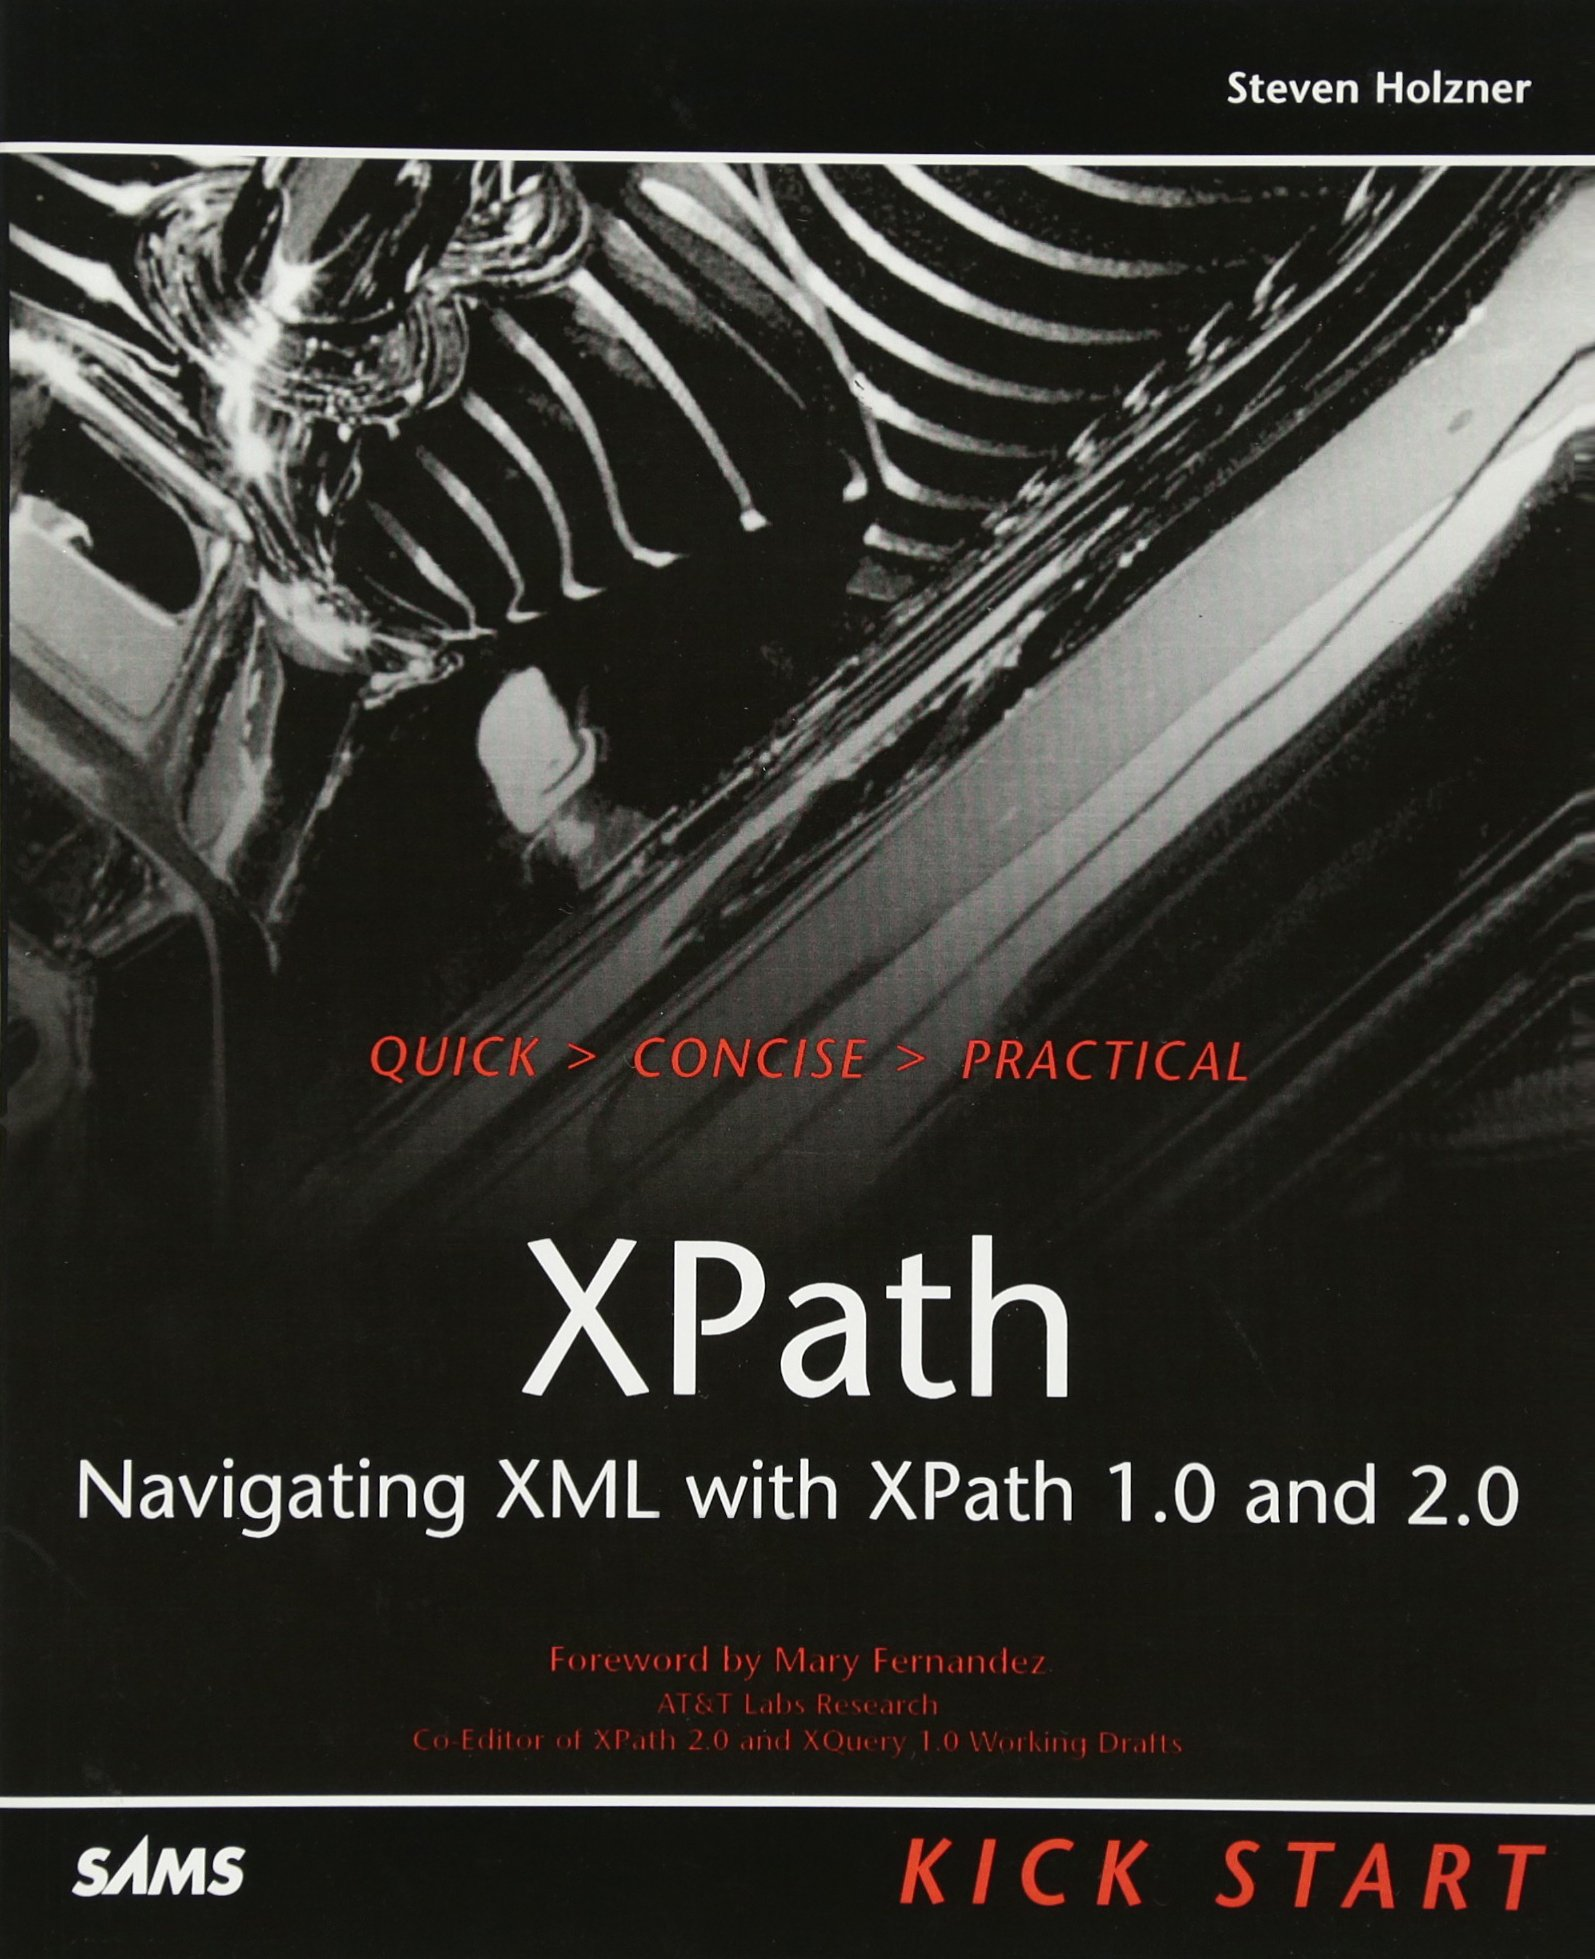 Buy XPath Kick Start: Navigating XML with XPath 1.0 and 2.0 Book Online at  Low Prices in India | XPath Kick Start: Navigating XML with XPath 1.0 and  2.0 ...